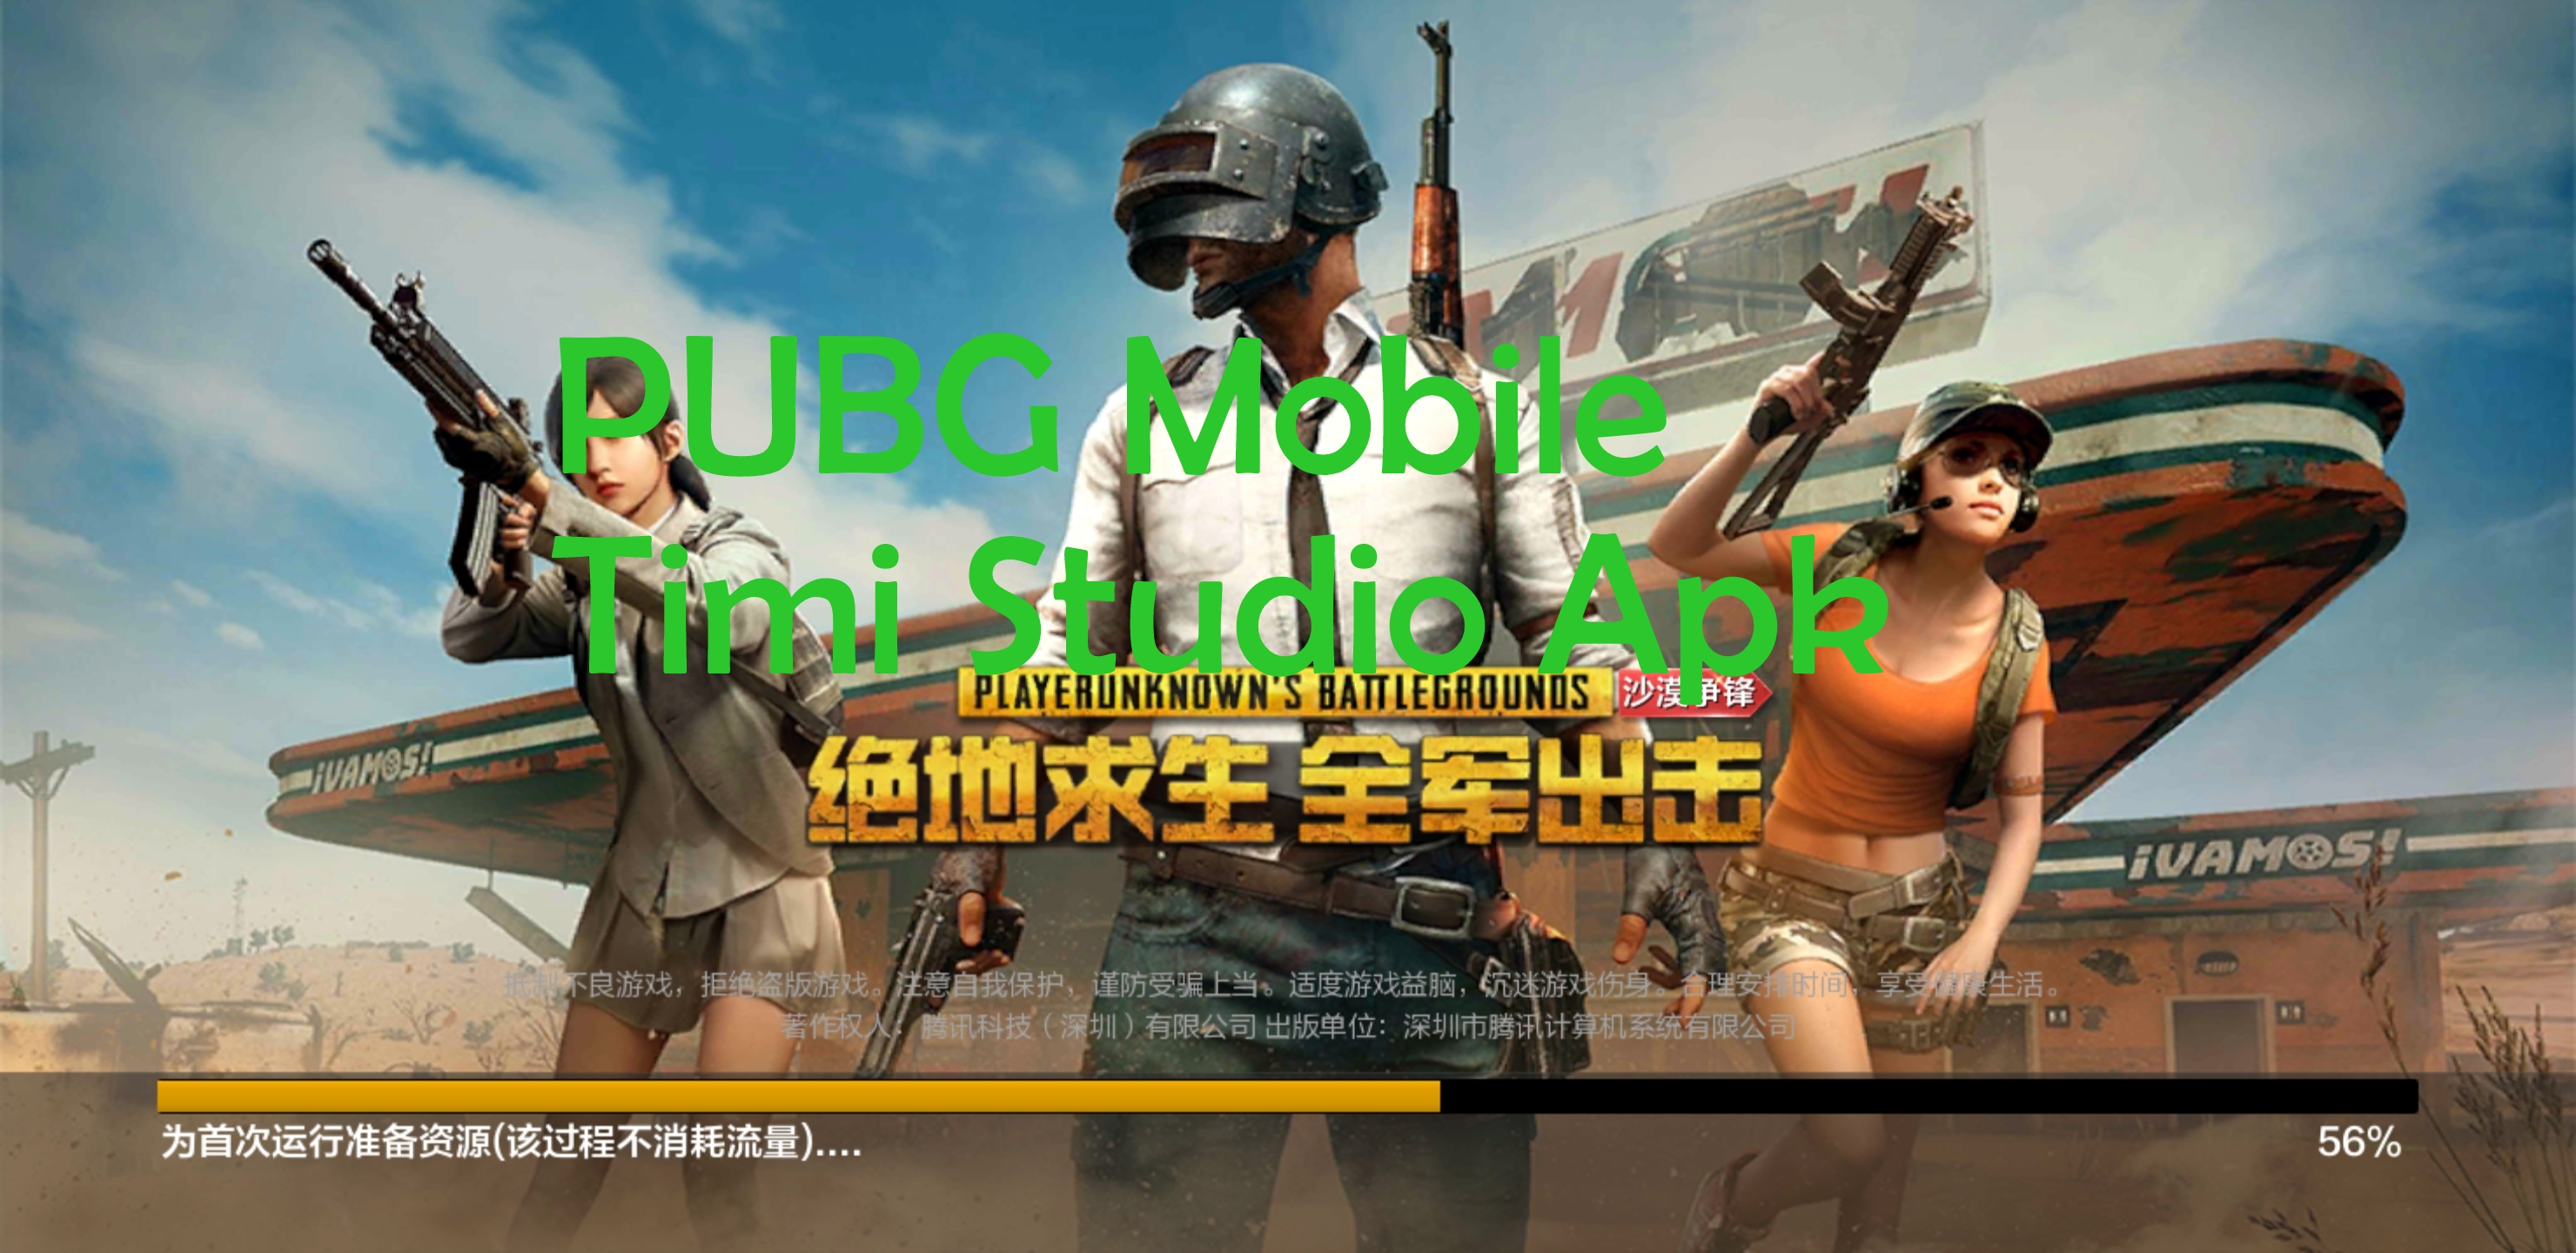 Download PUBG Mobile Timi Apk V1.0.6.3.0, With Miramar Map